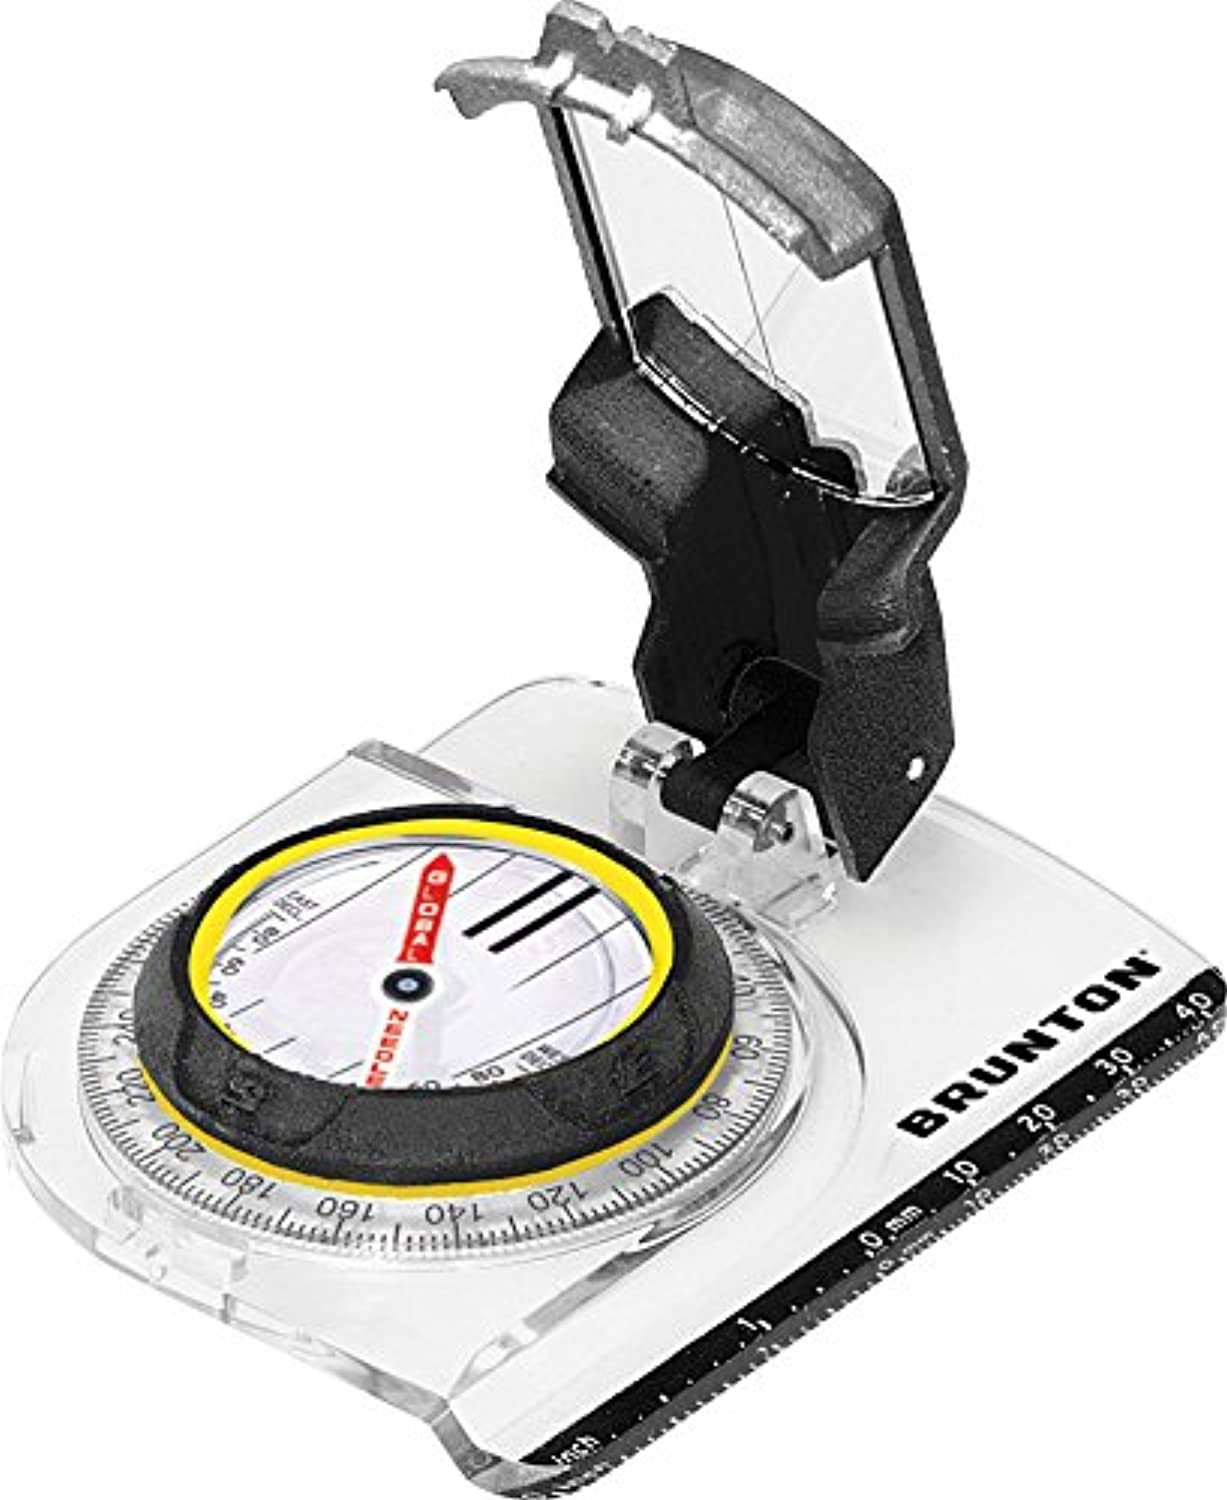 Brunton TruArc7 Mirror Compass with Global Needle and Standard Metric Scales